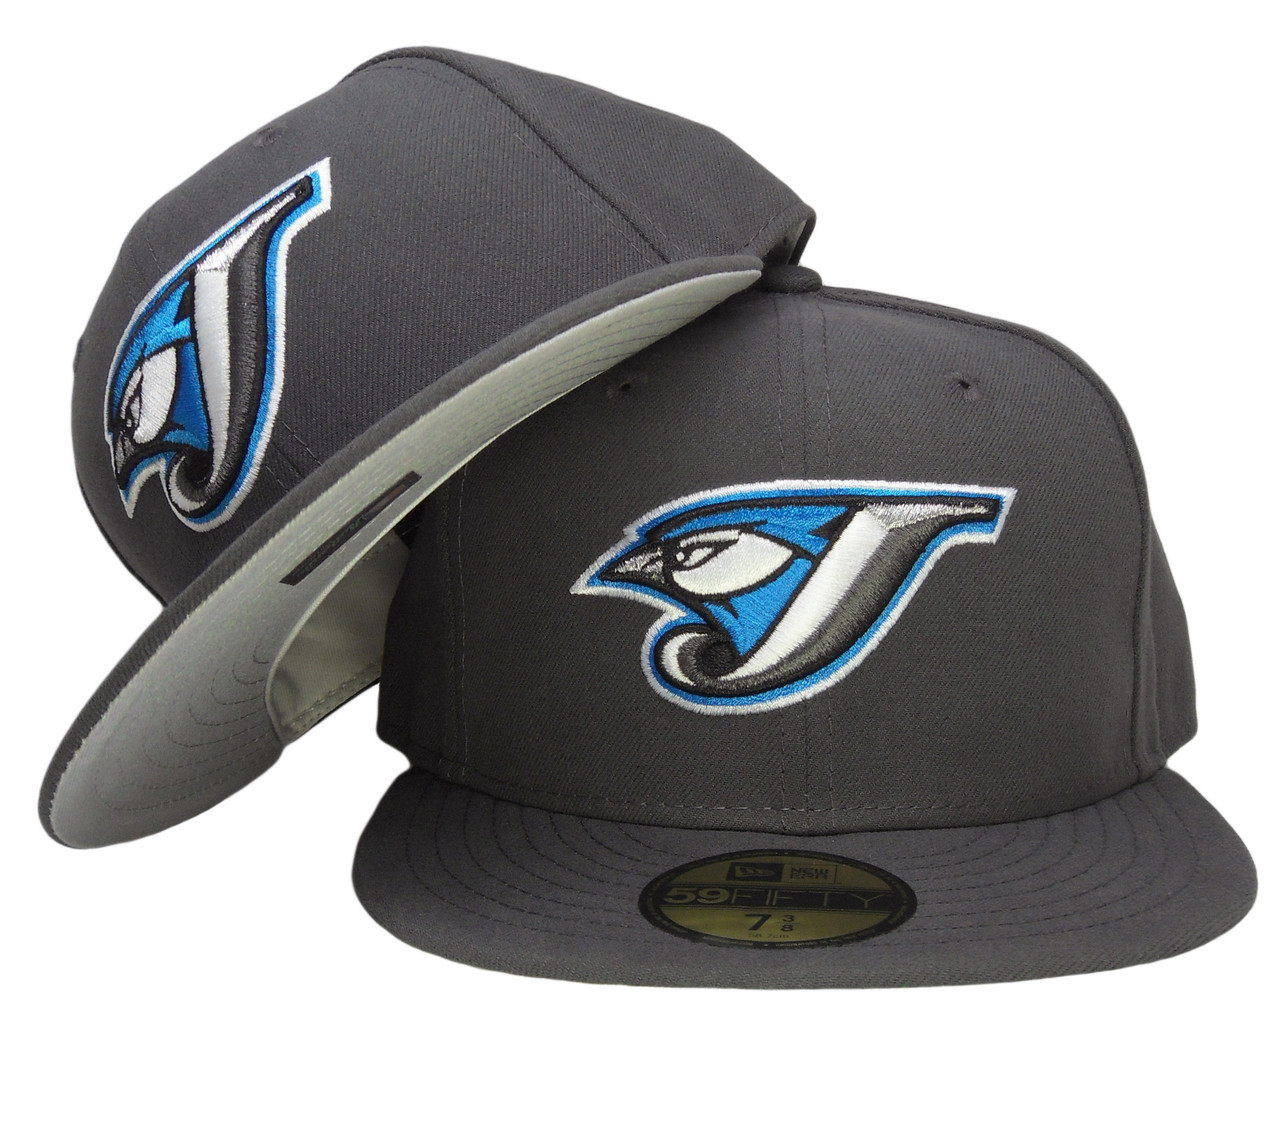 100% authentic cf1cd 26a0f Toronto Blue Jays New Era Gray Bottom Fitted Hat - Graphite Gray, Marine  Blue